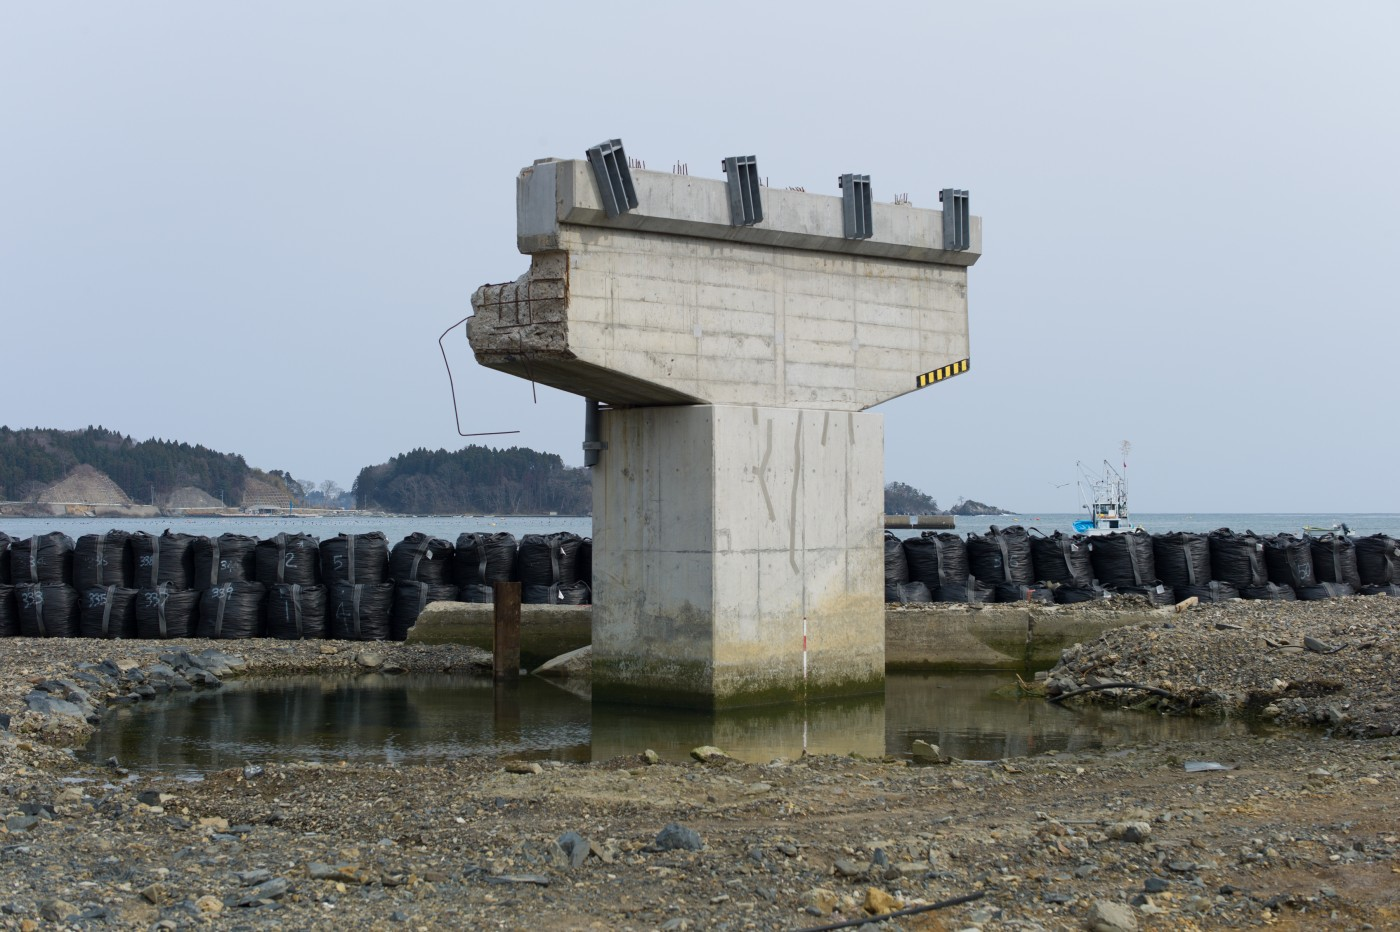 "Michel Huneault, </span><span><em>Utatsu Remains of a Bridge Damaged by Tsunami</em>, </span><span>2012. Archival pigment print, 20 x 30""."